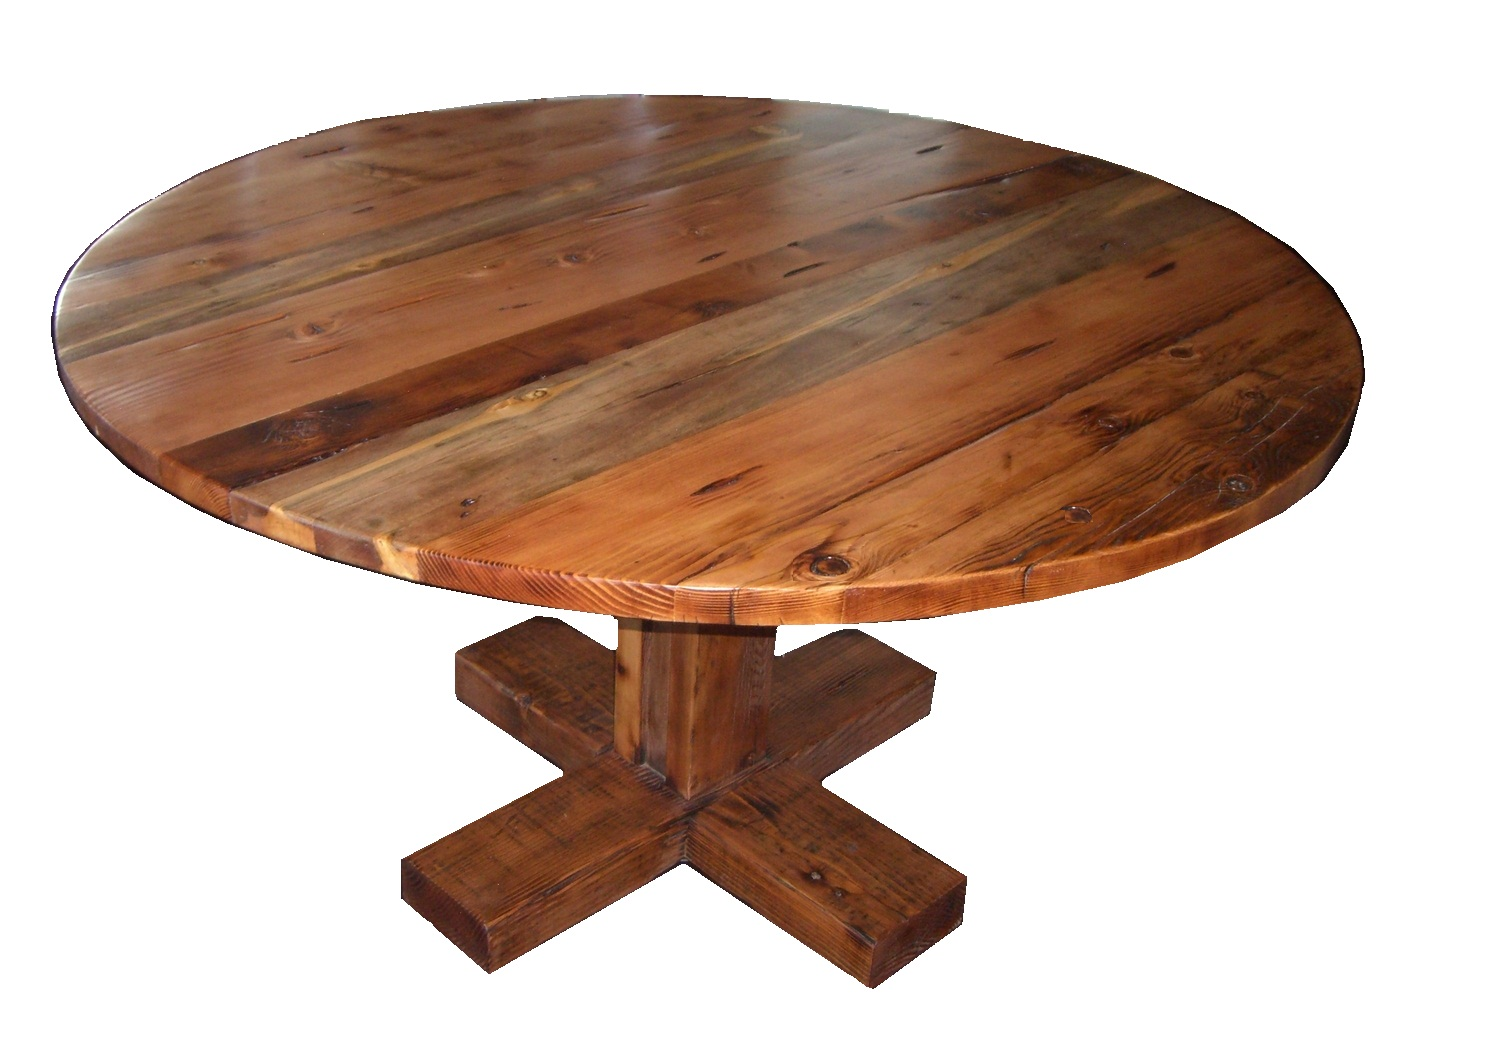 Glass conference table for sale - Download Bradley S Furniture Etc Utah Rustic Dining Table Sets Glass Conference Table For Sale